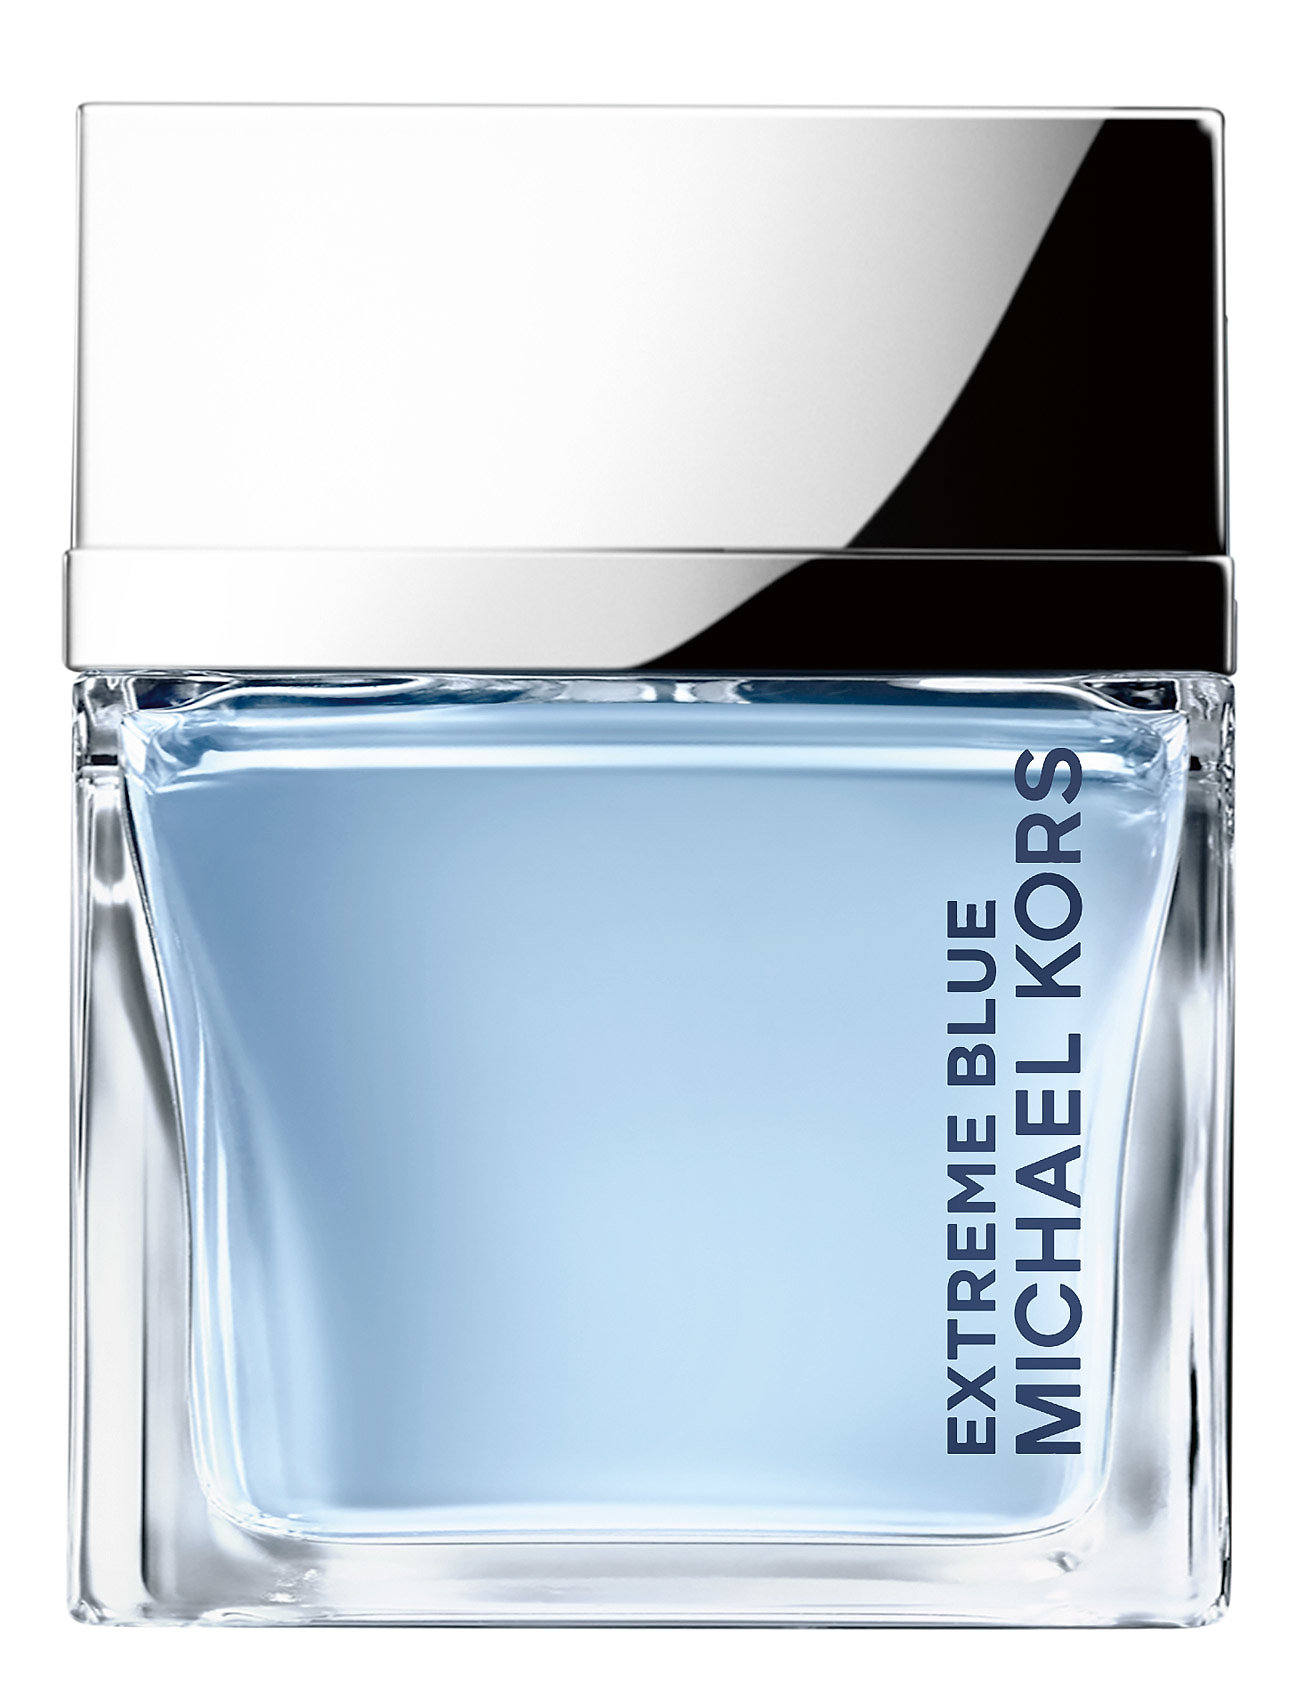 Extreme Blue Men Eau D Michael Kors Fragrance  til Herrer i